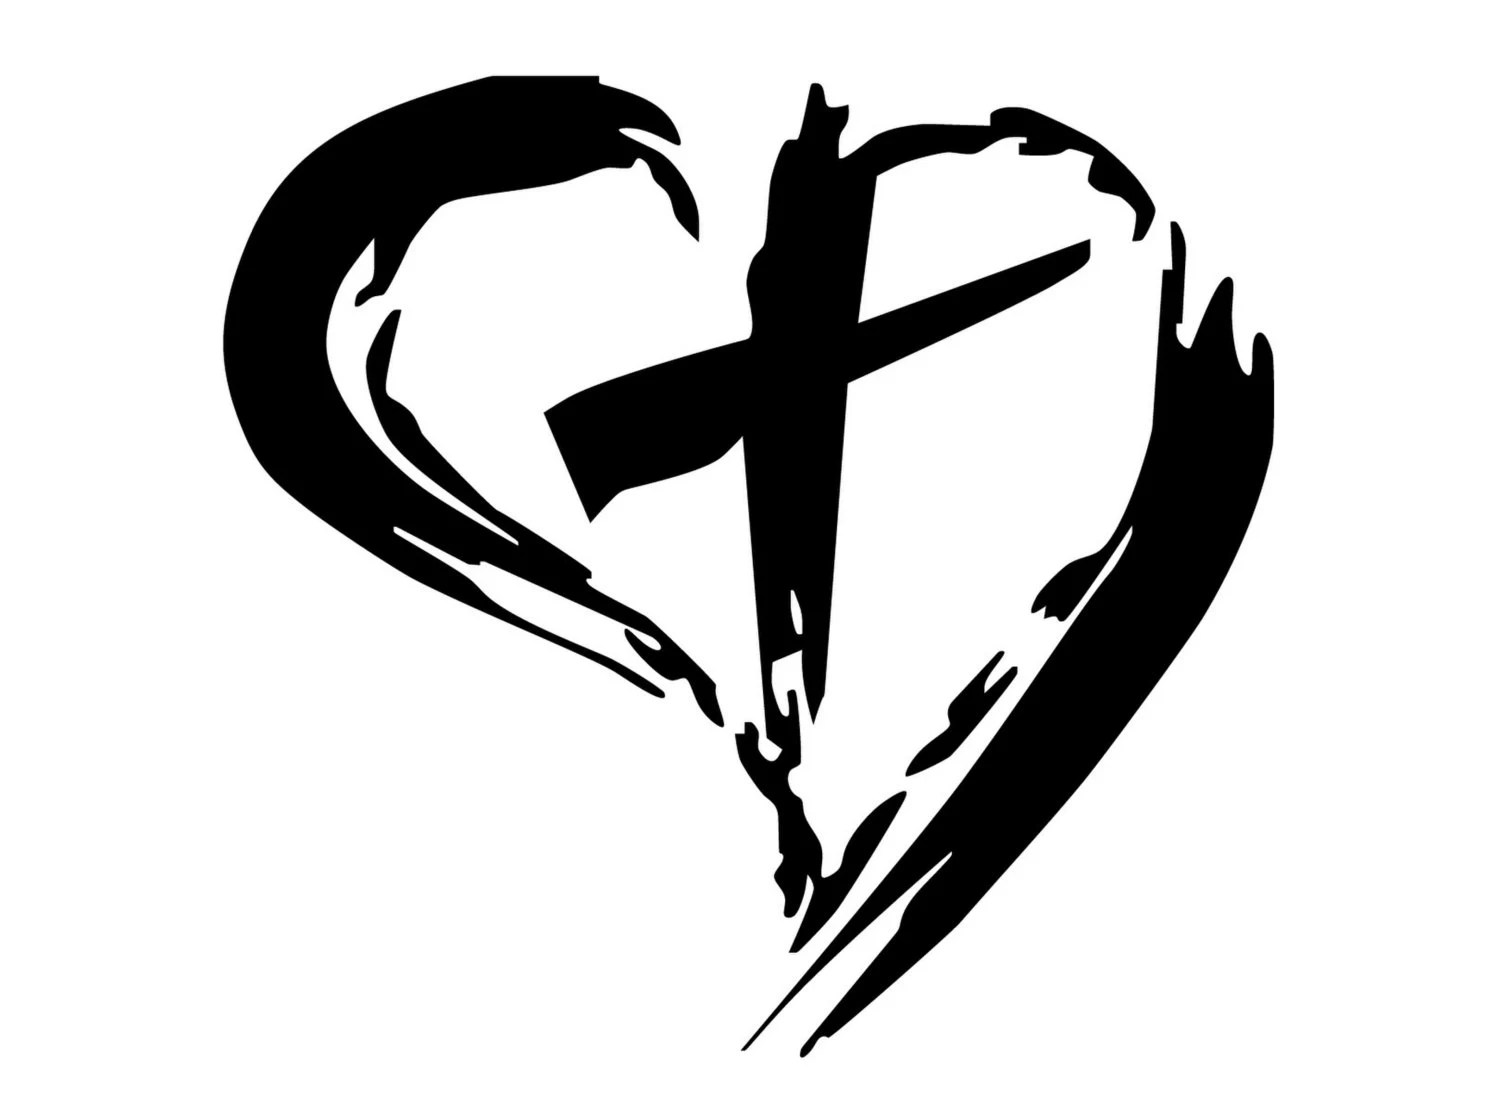 Christian Cross Inside Heart Decal. Cross With Around It